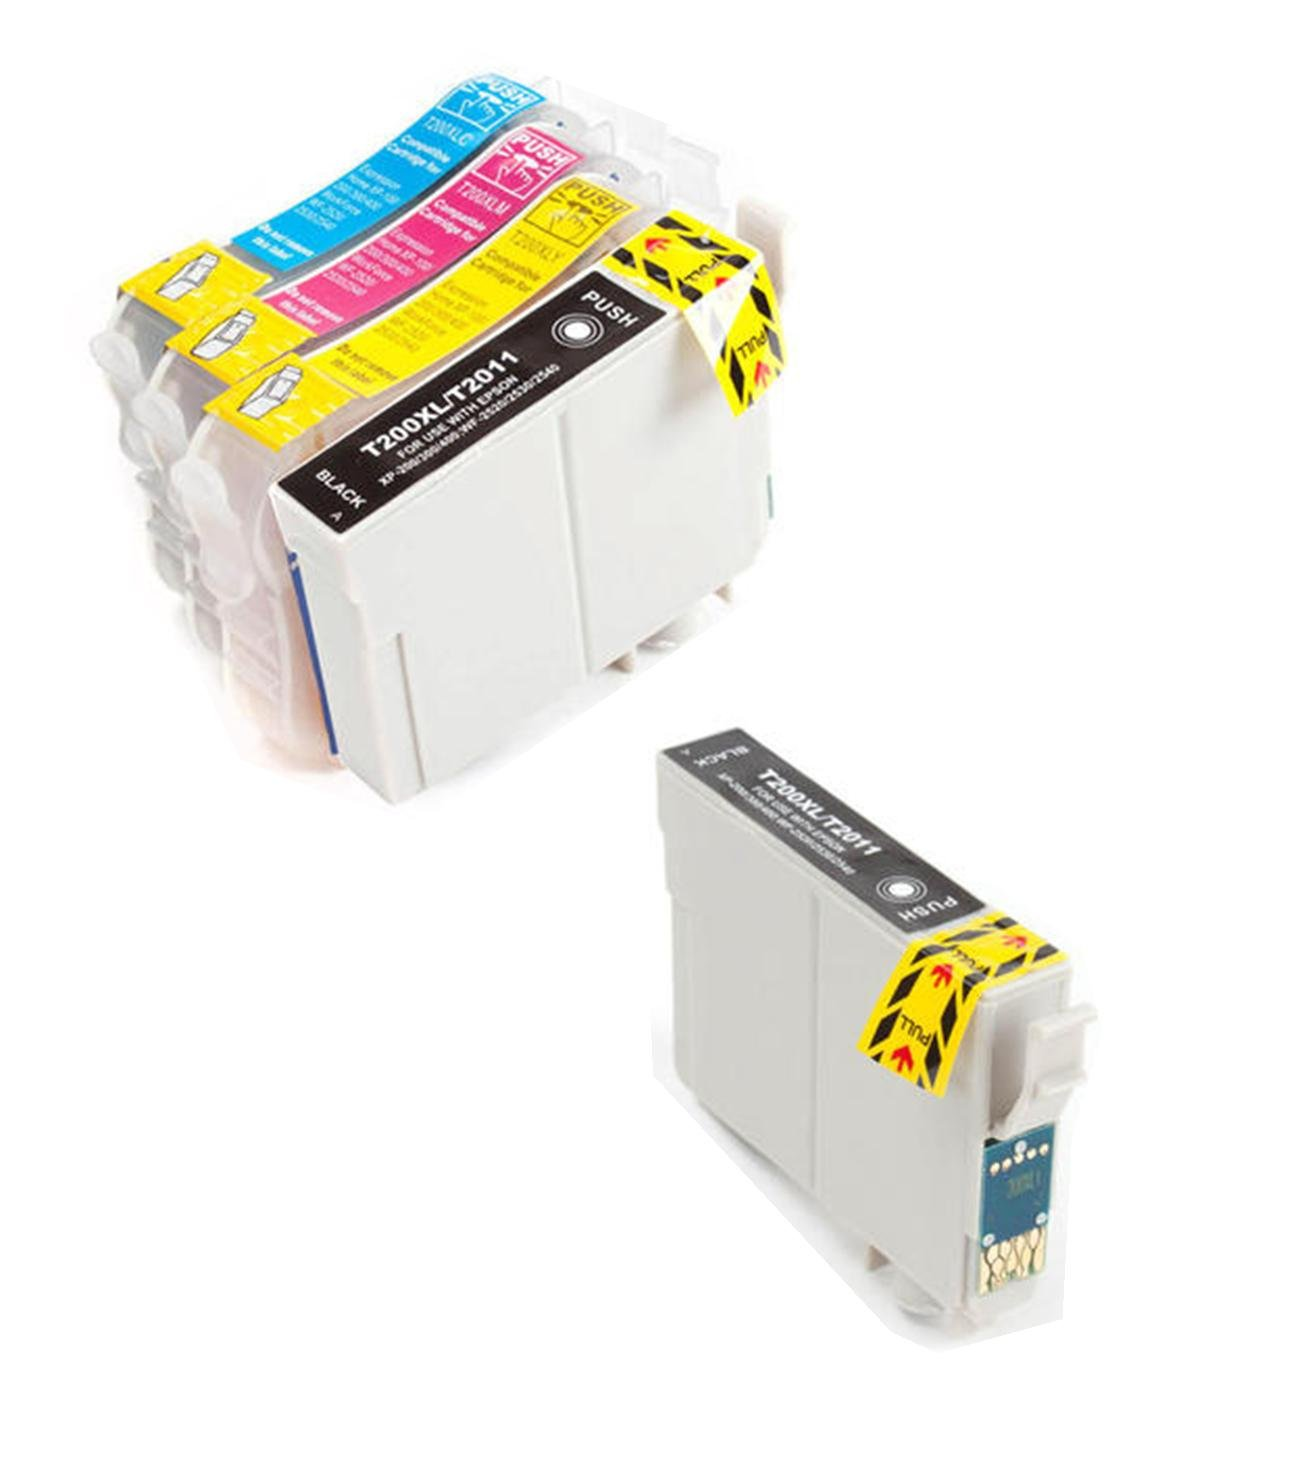 5 Pack - Toners & More ® Remanufactured Inkjet Cartridge Set for Epson T200XL #200XL T200 #200, T200XL120 Black, T200XL220 Cyan, T200XL320 Magenta, T200XL420 Yellow, Compatible with Epson WorkForce WF-2520, WF-2530, WF-2540, Expression XP-200 Small-in-